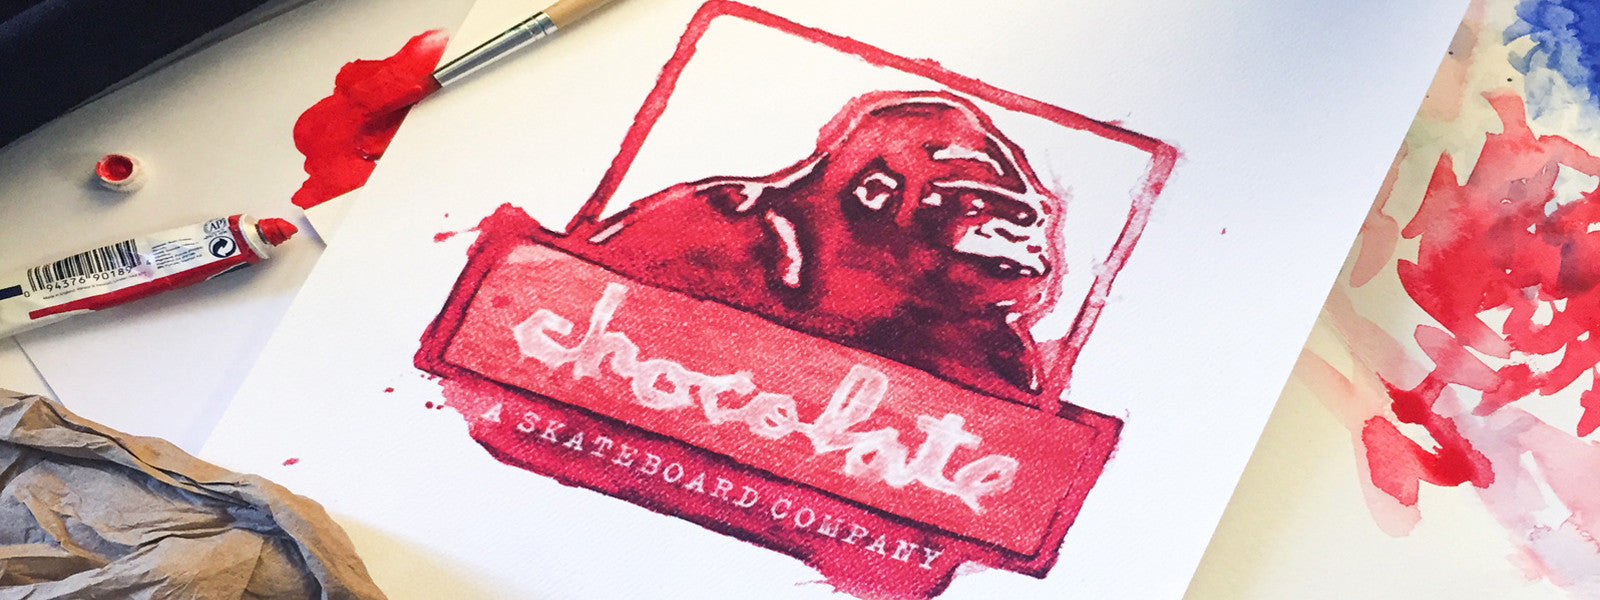 Chocolate Skateboards & XLarge Clothing